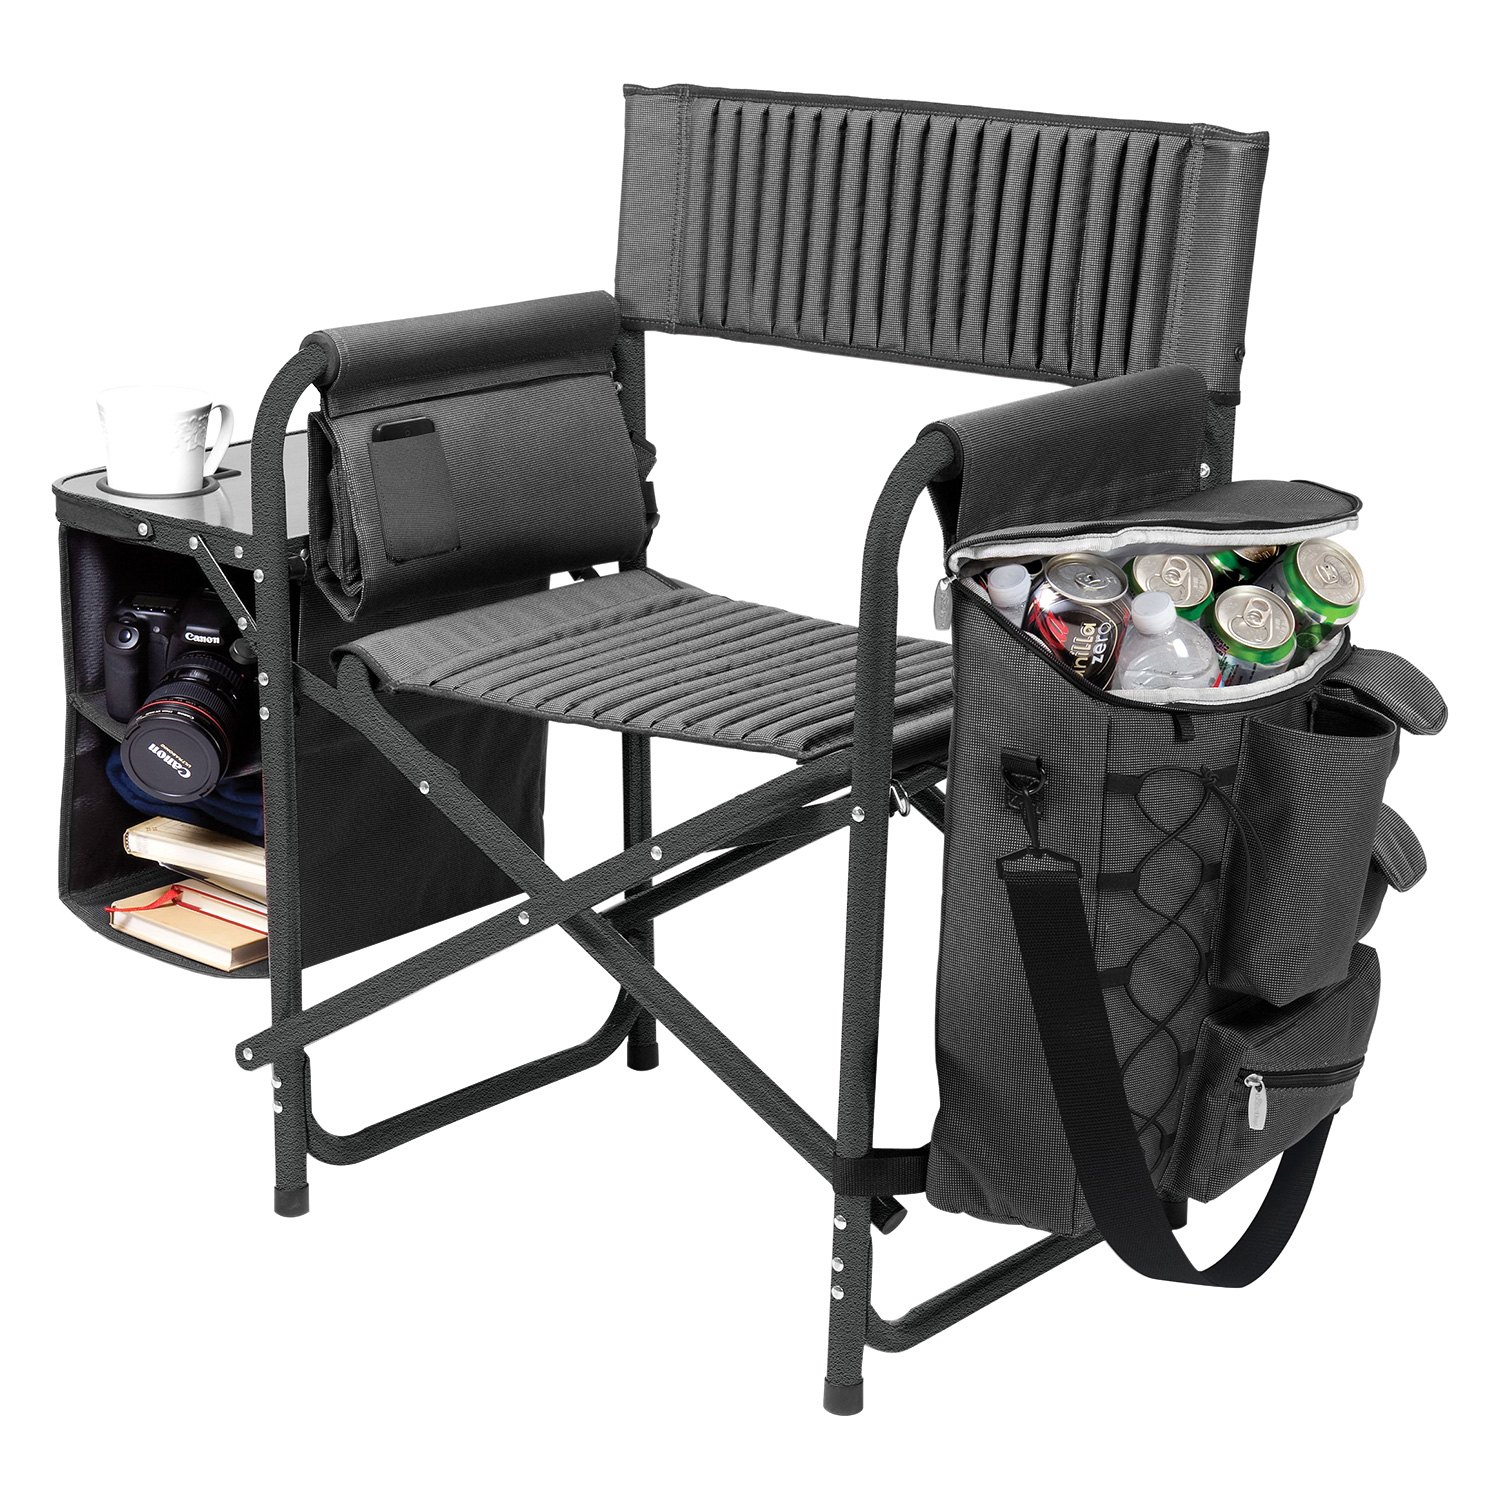 Wondrous Picnic Time 807 00 679 224 0 Ncaa Fusion Iowa Hawkeyes Gray Black Camp Chair Beatyapartments Chair Design Images Beatyapartmentscom